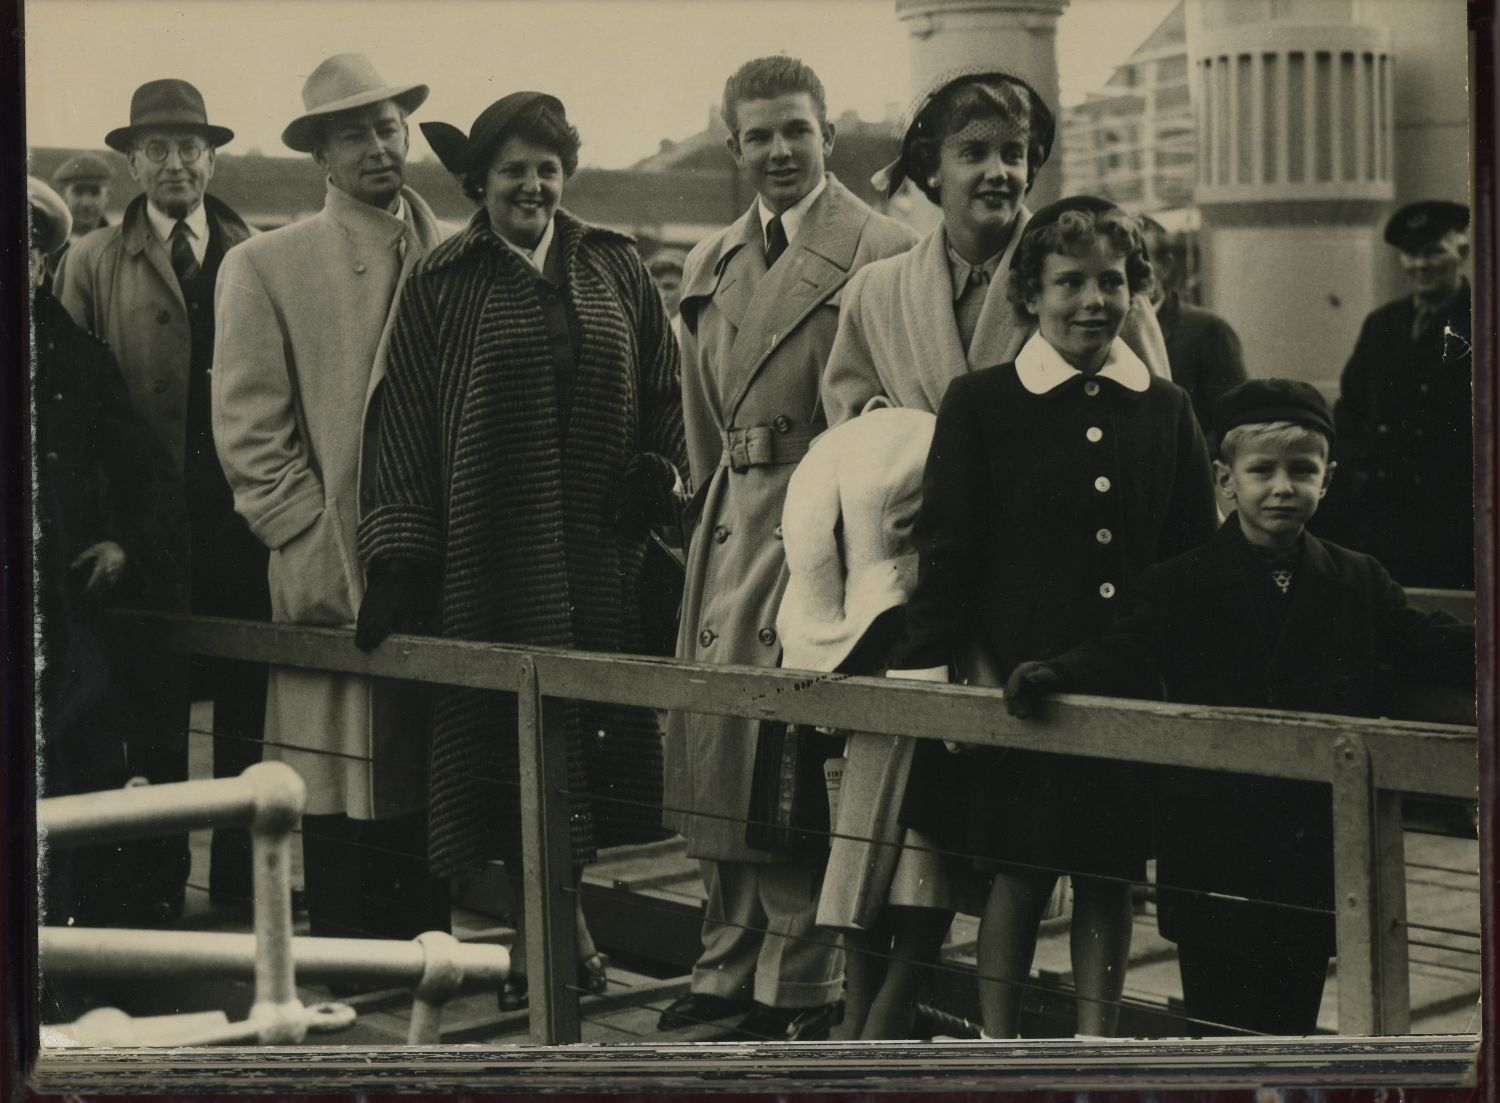 Ladd family getting off boat-Europe